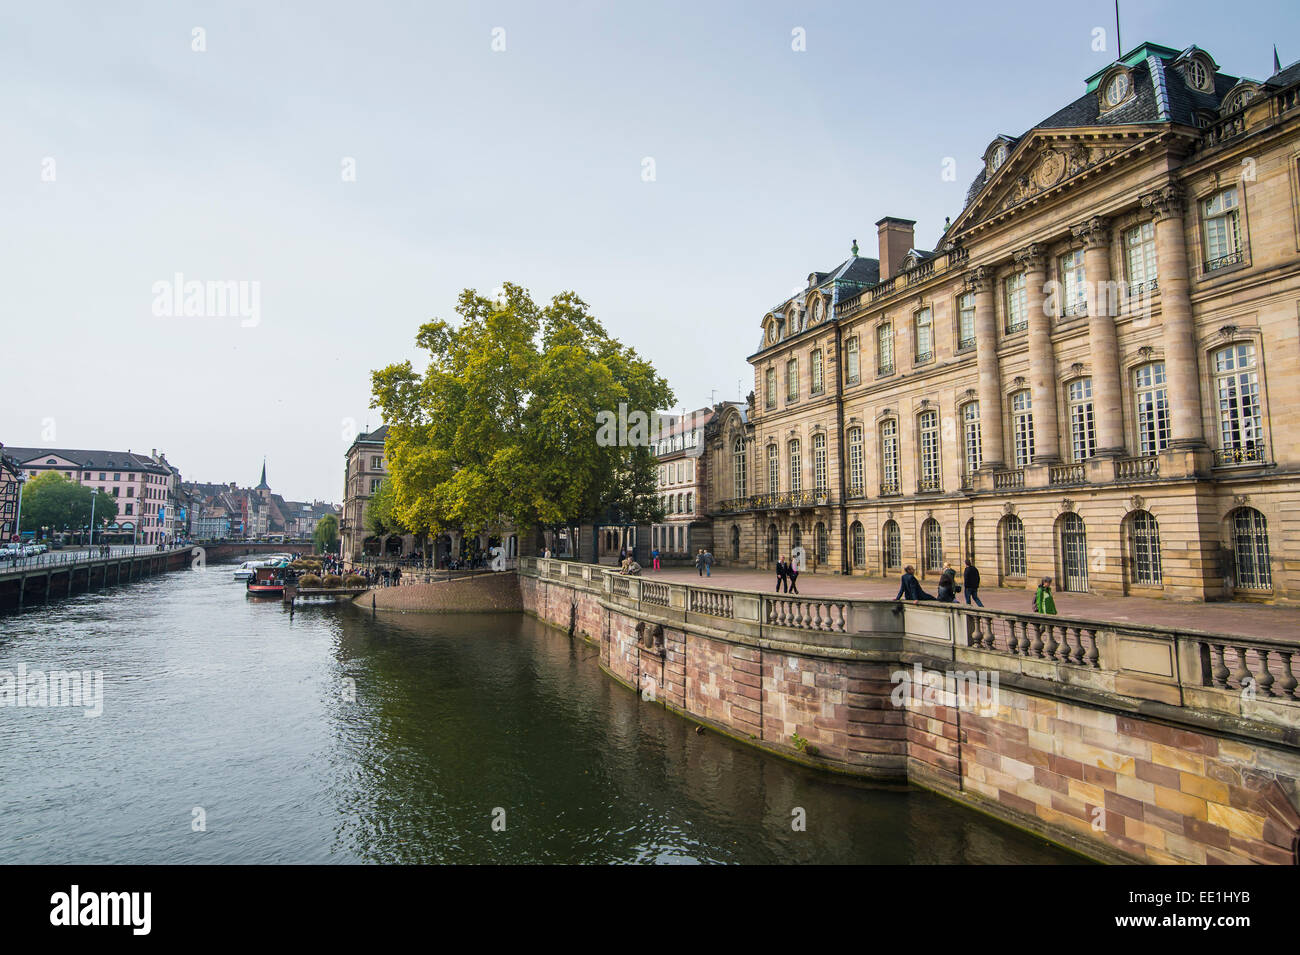 Houses along the Ill River, Strasbourg, Alsace, France, Europe - Stock Image